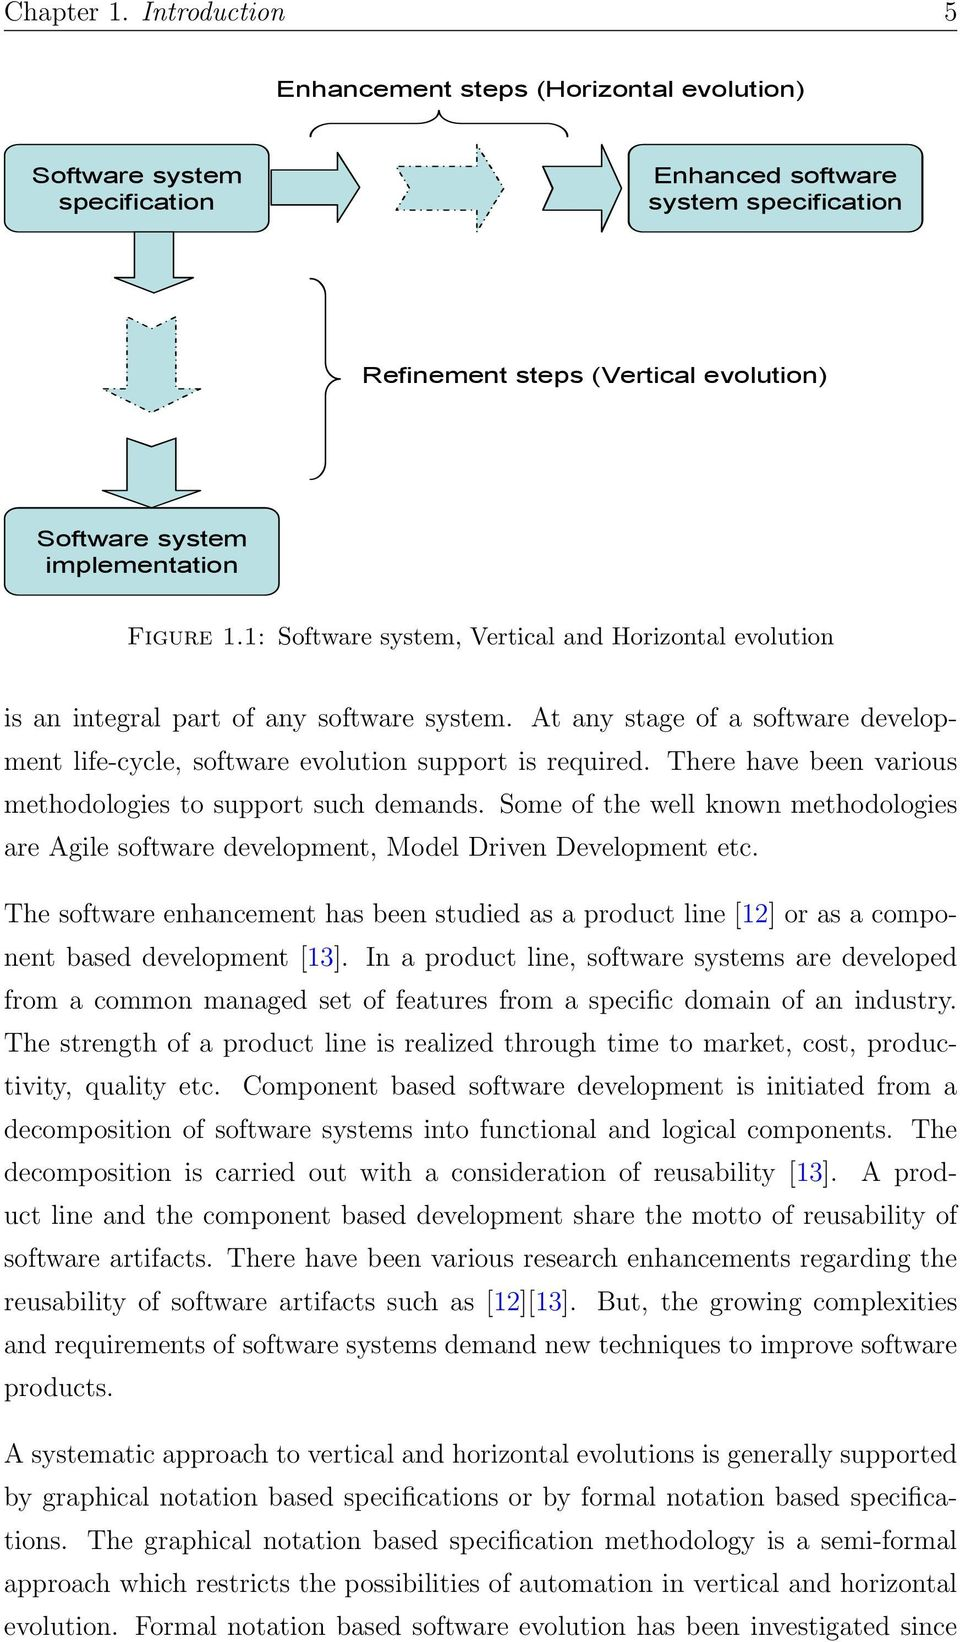 Figure 1.1: Software system, Vertical and Horizontal evolution is an integral part of any software system. At any stage of a software development life-cycle, software evolution support is required.